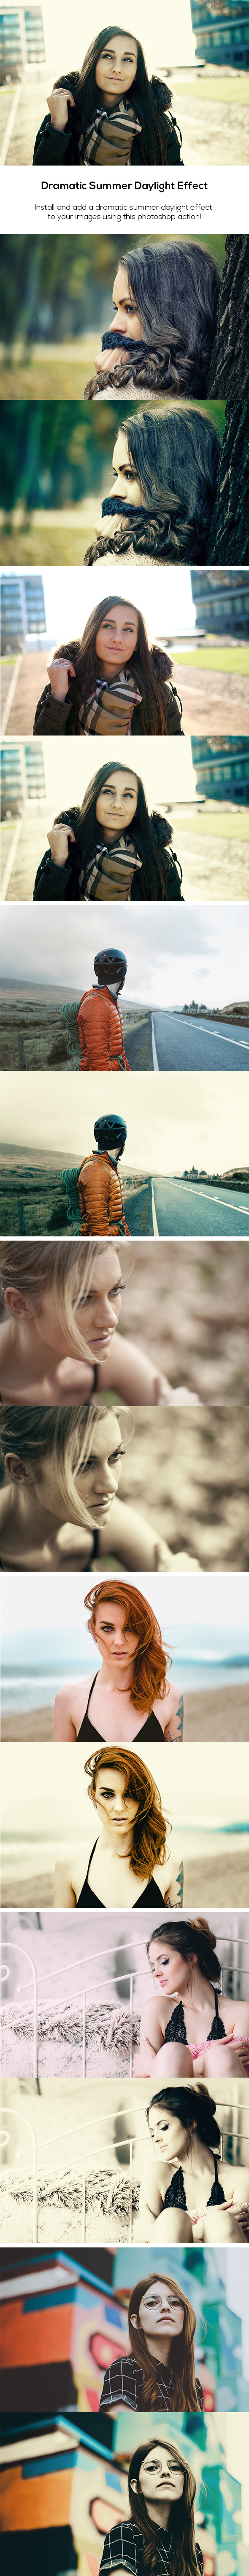 GraphicRiver Dramatic Cinematic Colorful Effect 20684124